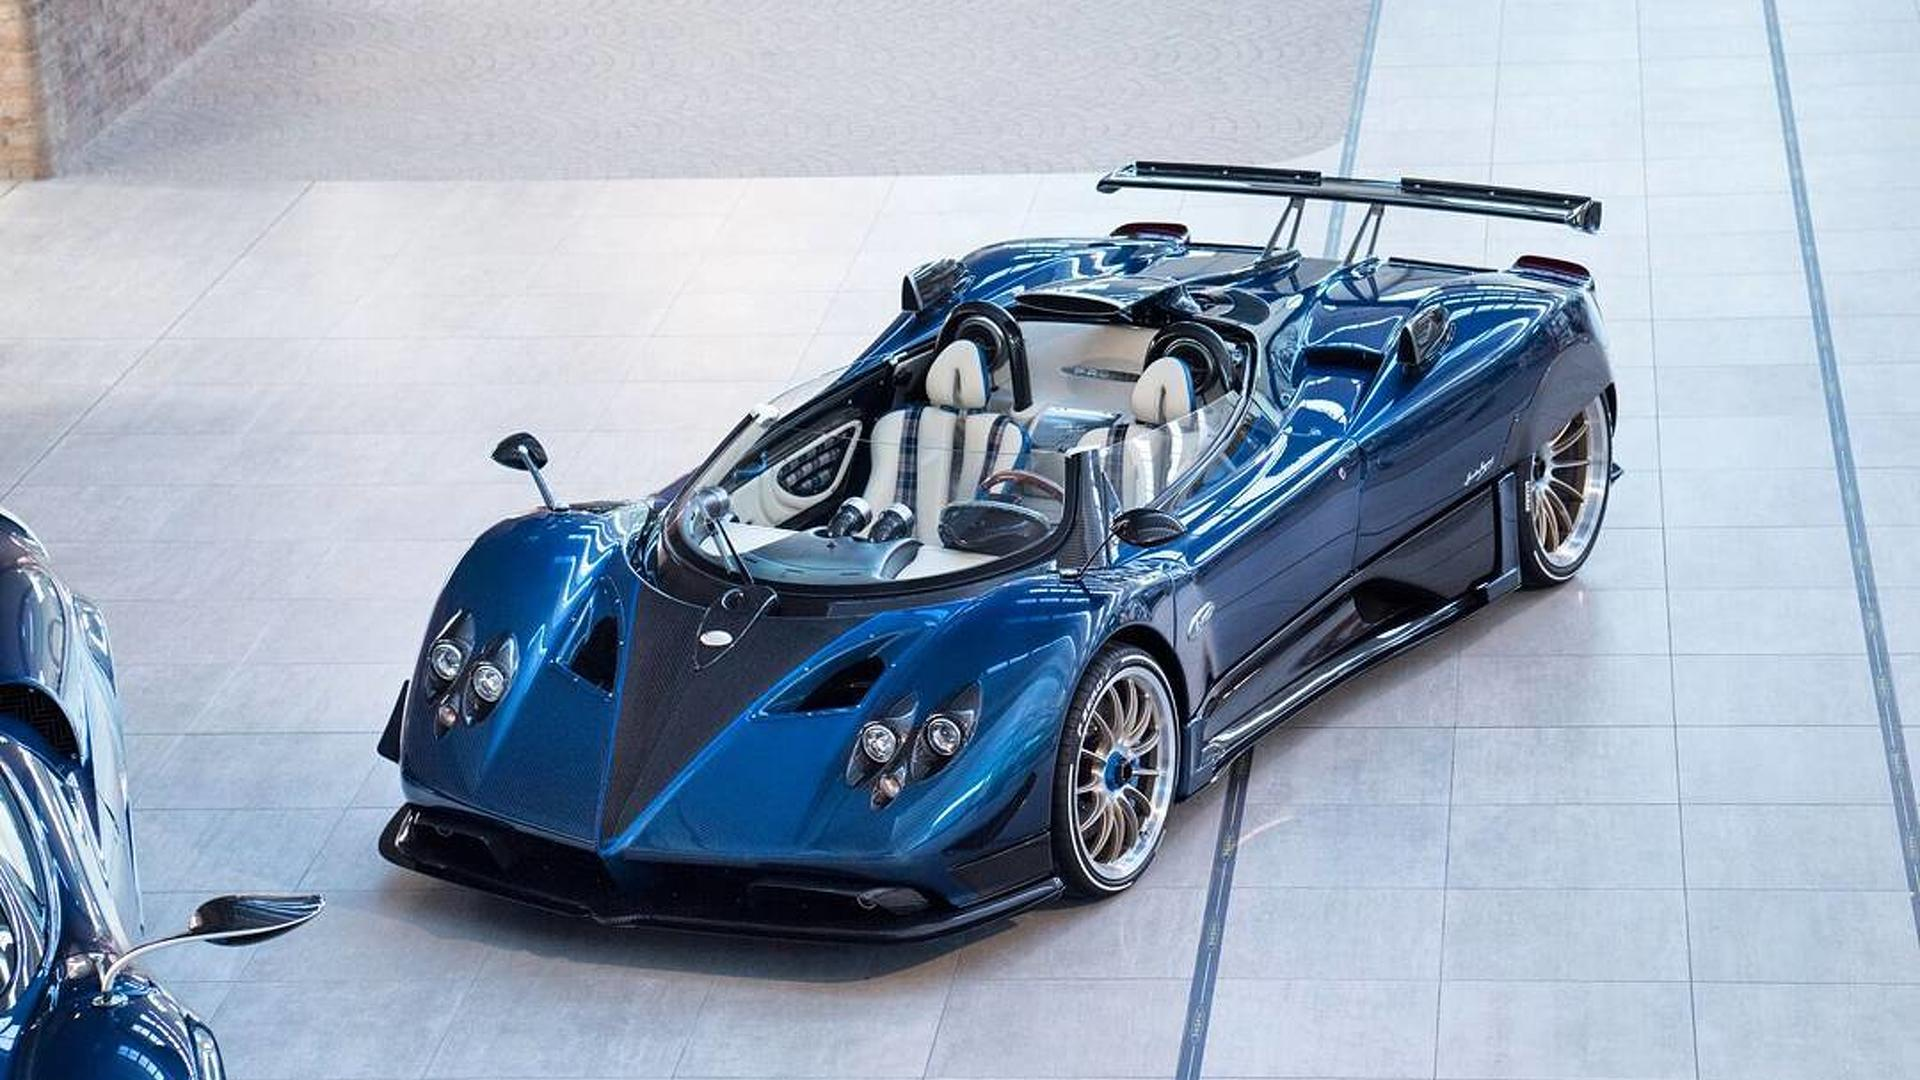 Pagani Huayra Replacement To Be Offered In Pure Electric Form ile ilgili görsel sonucu